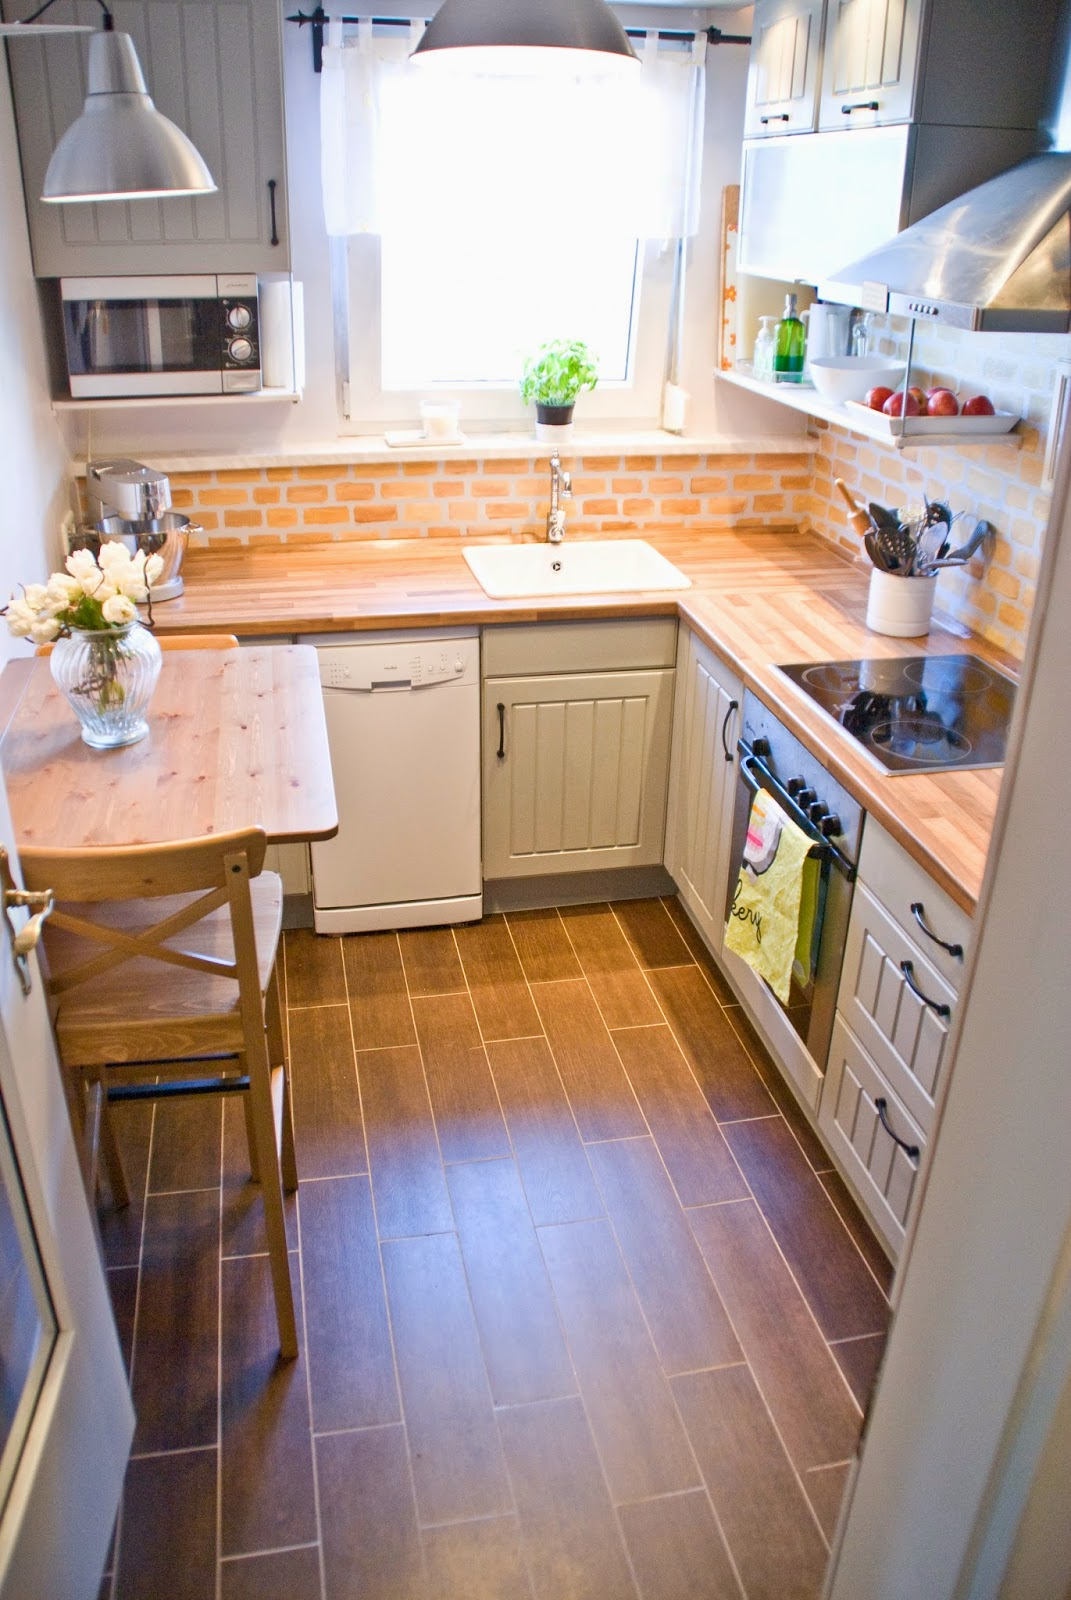 Small Kitchen With Wood Butcherblock Countertops   Pudel Design Featured On  @Remodelaholic